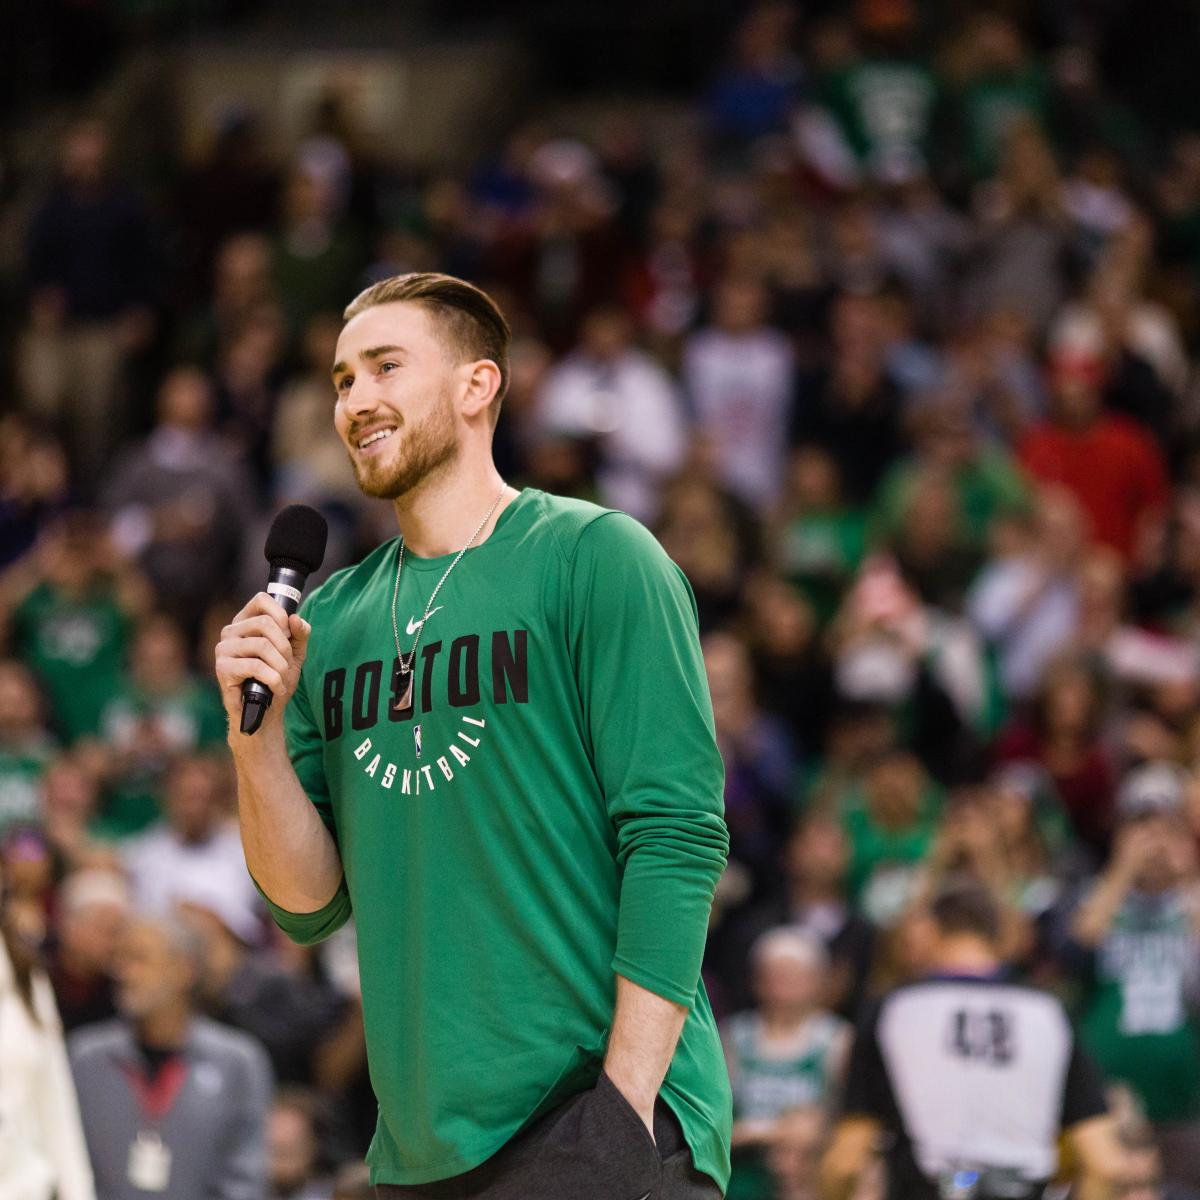 Celtics' Gordon Hayward on Track to Be 'Fully Cleared' in August from Leg Injury